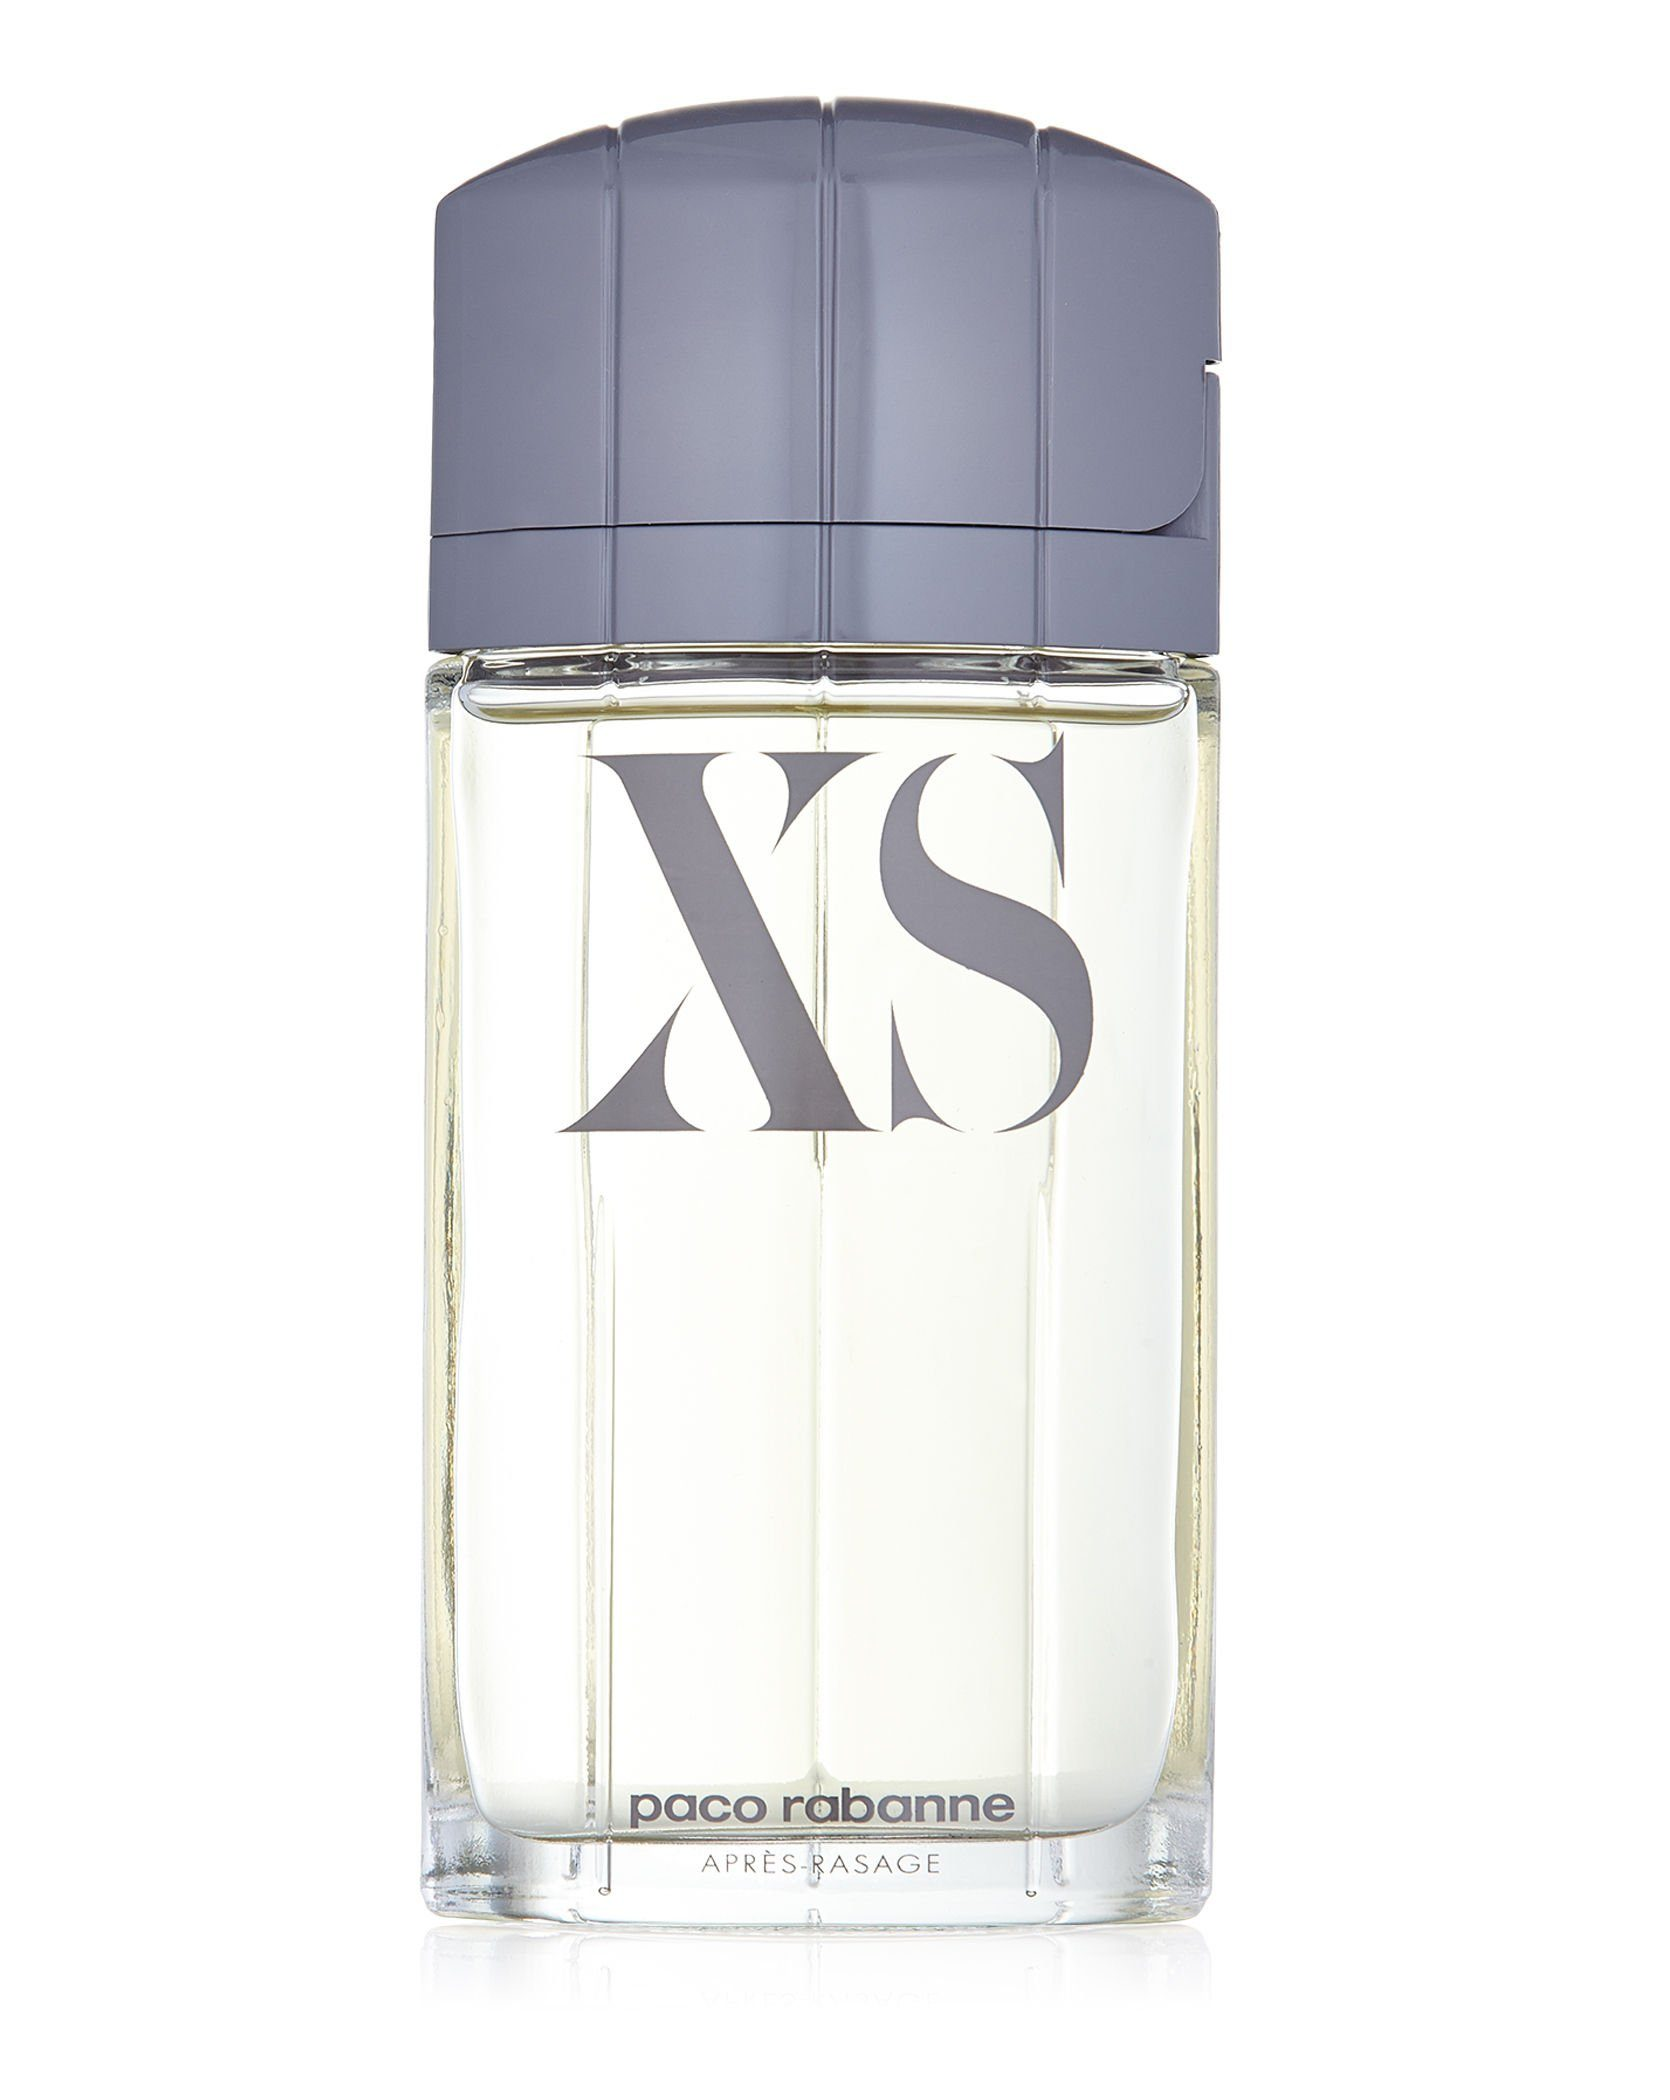 Paco Rabanne Aftershave »Xs«